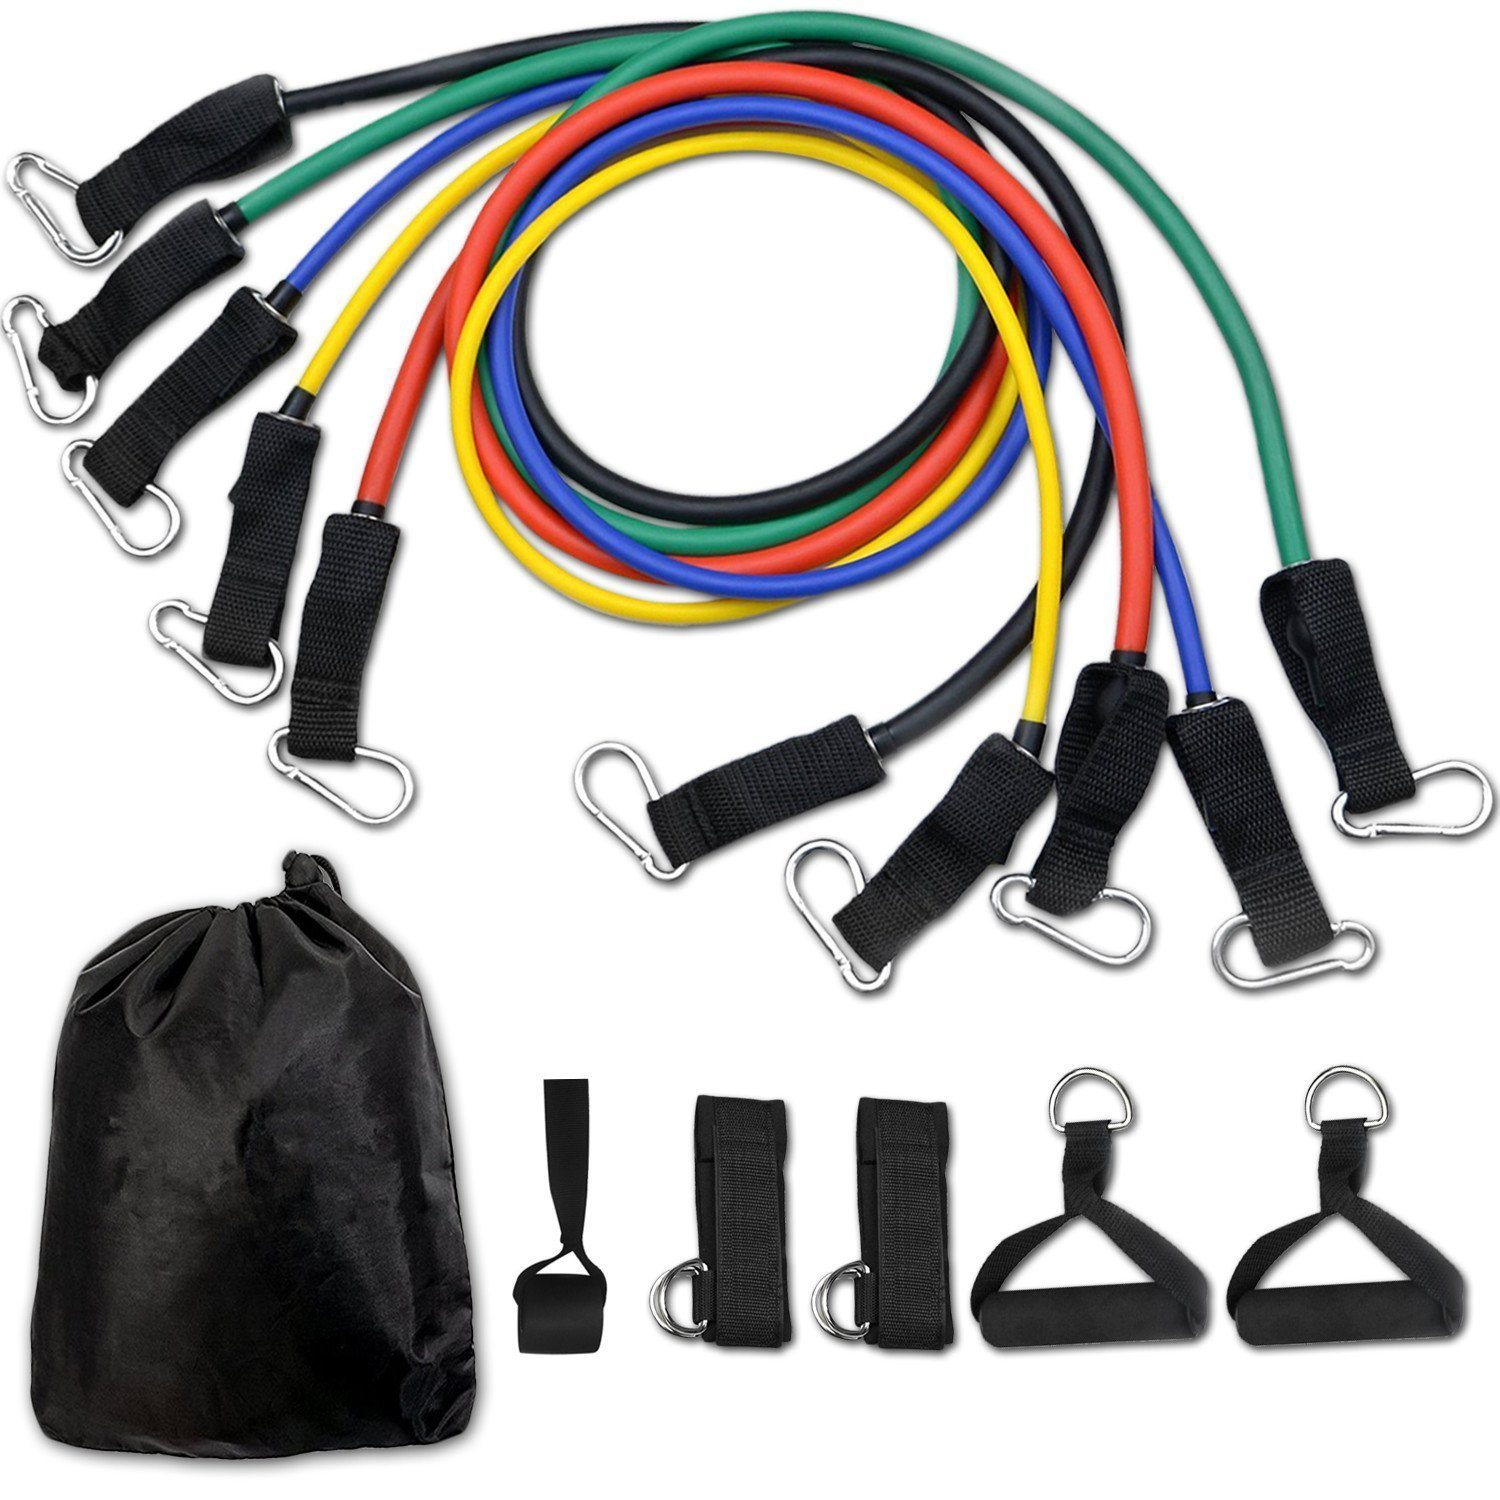 Small Space Home Fitness Equipment For Your Apartment | 11-Piece Resistance Band Set